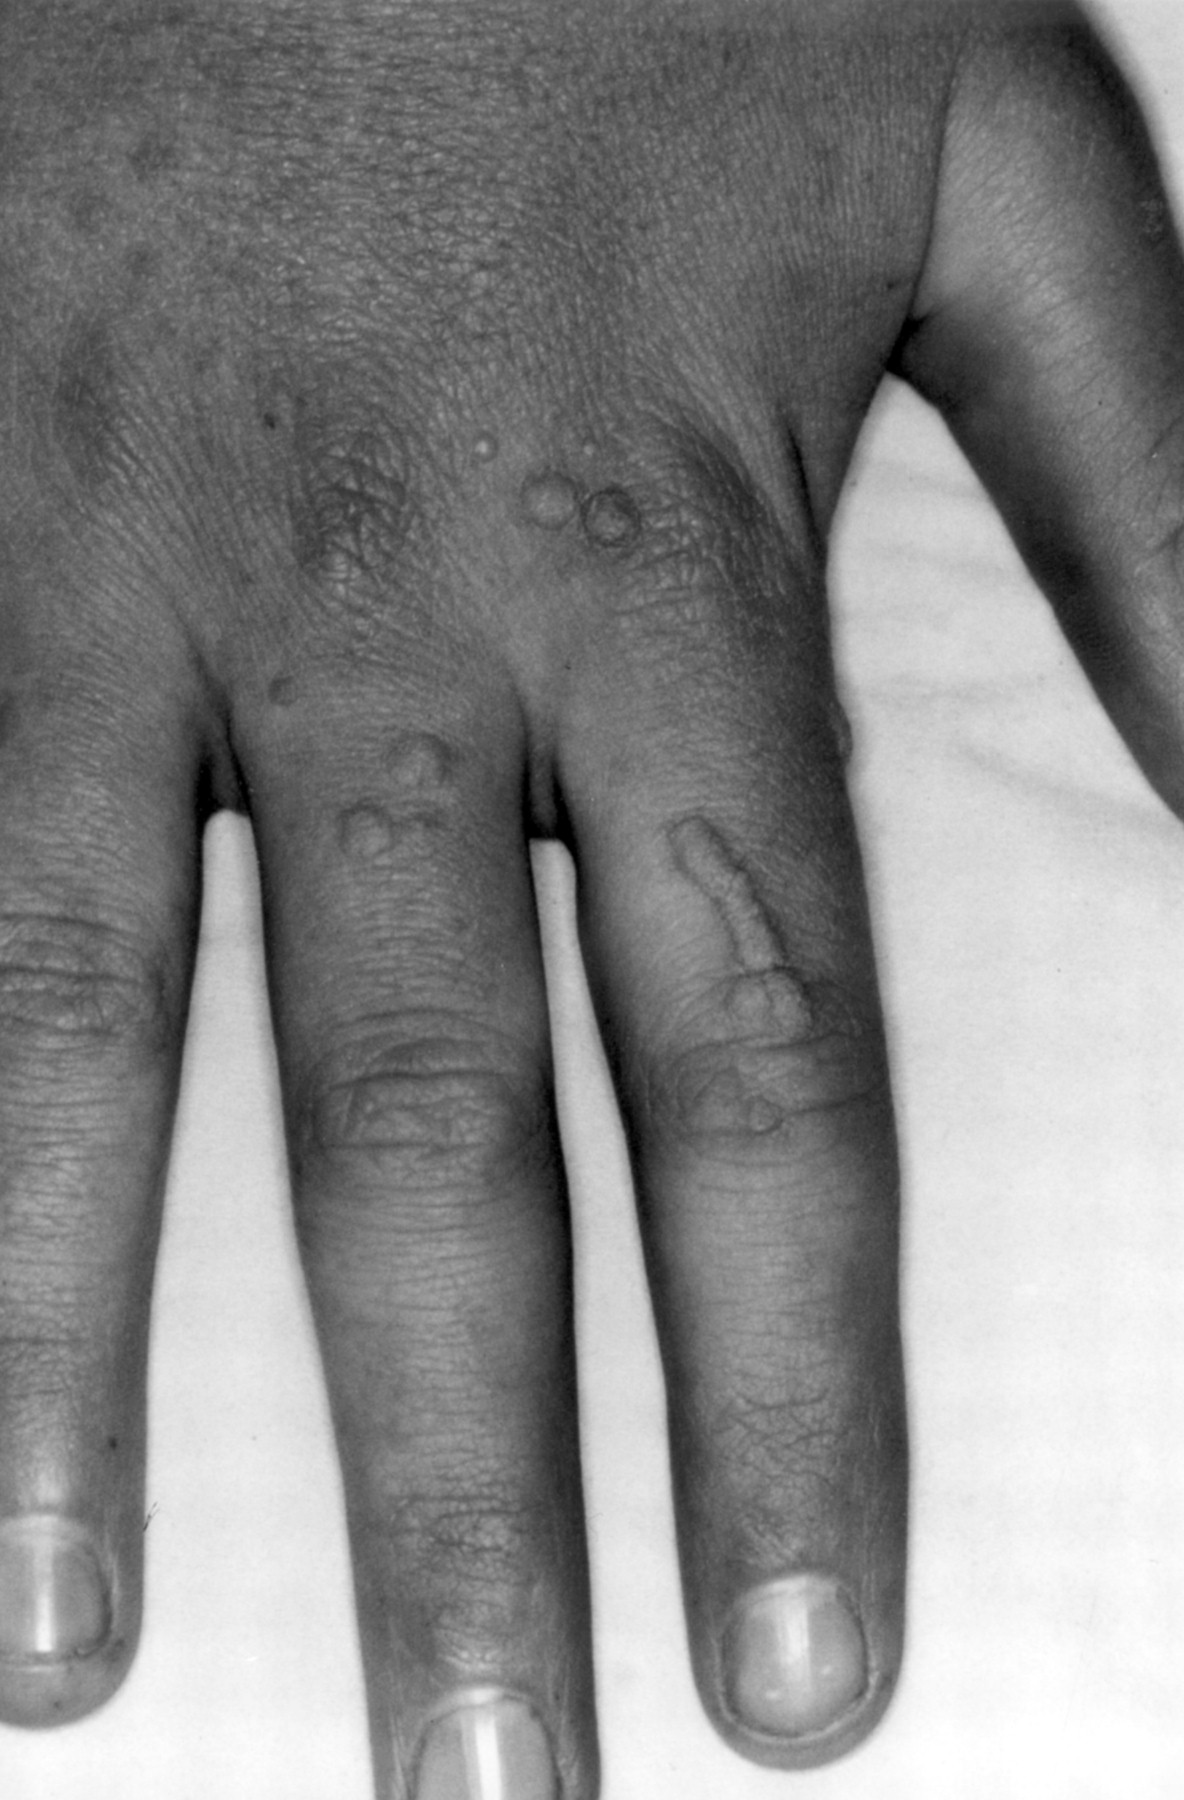 How to manage warts | Archives of Disease in Childhood